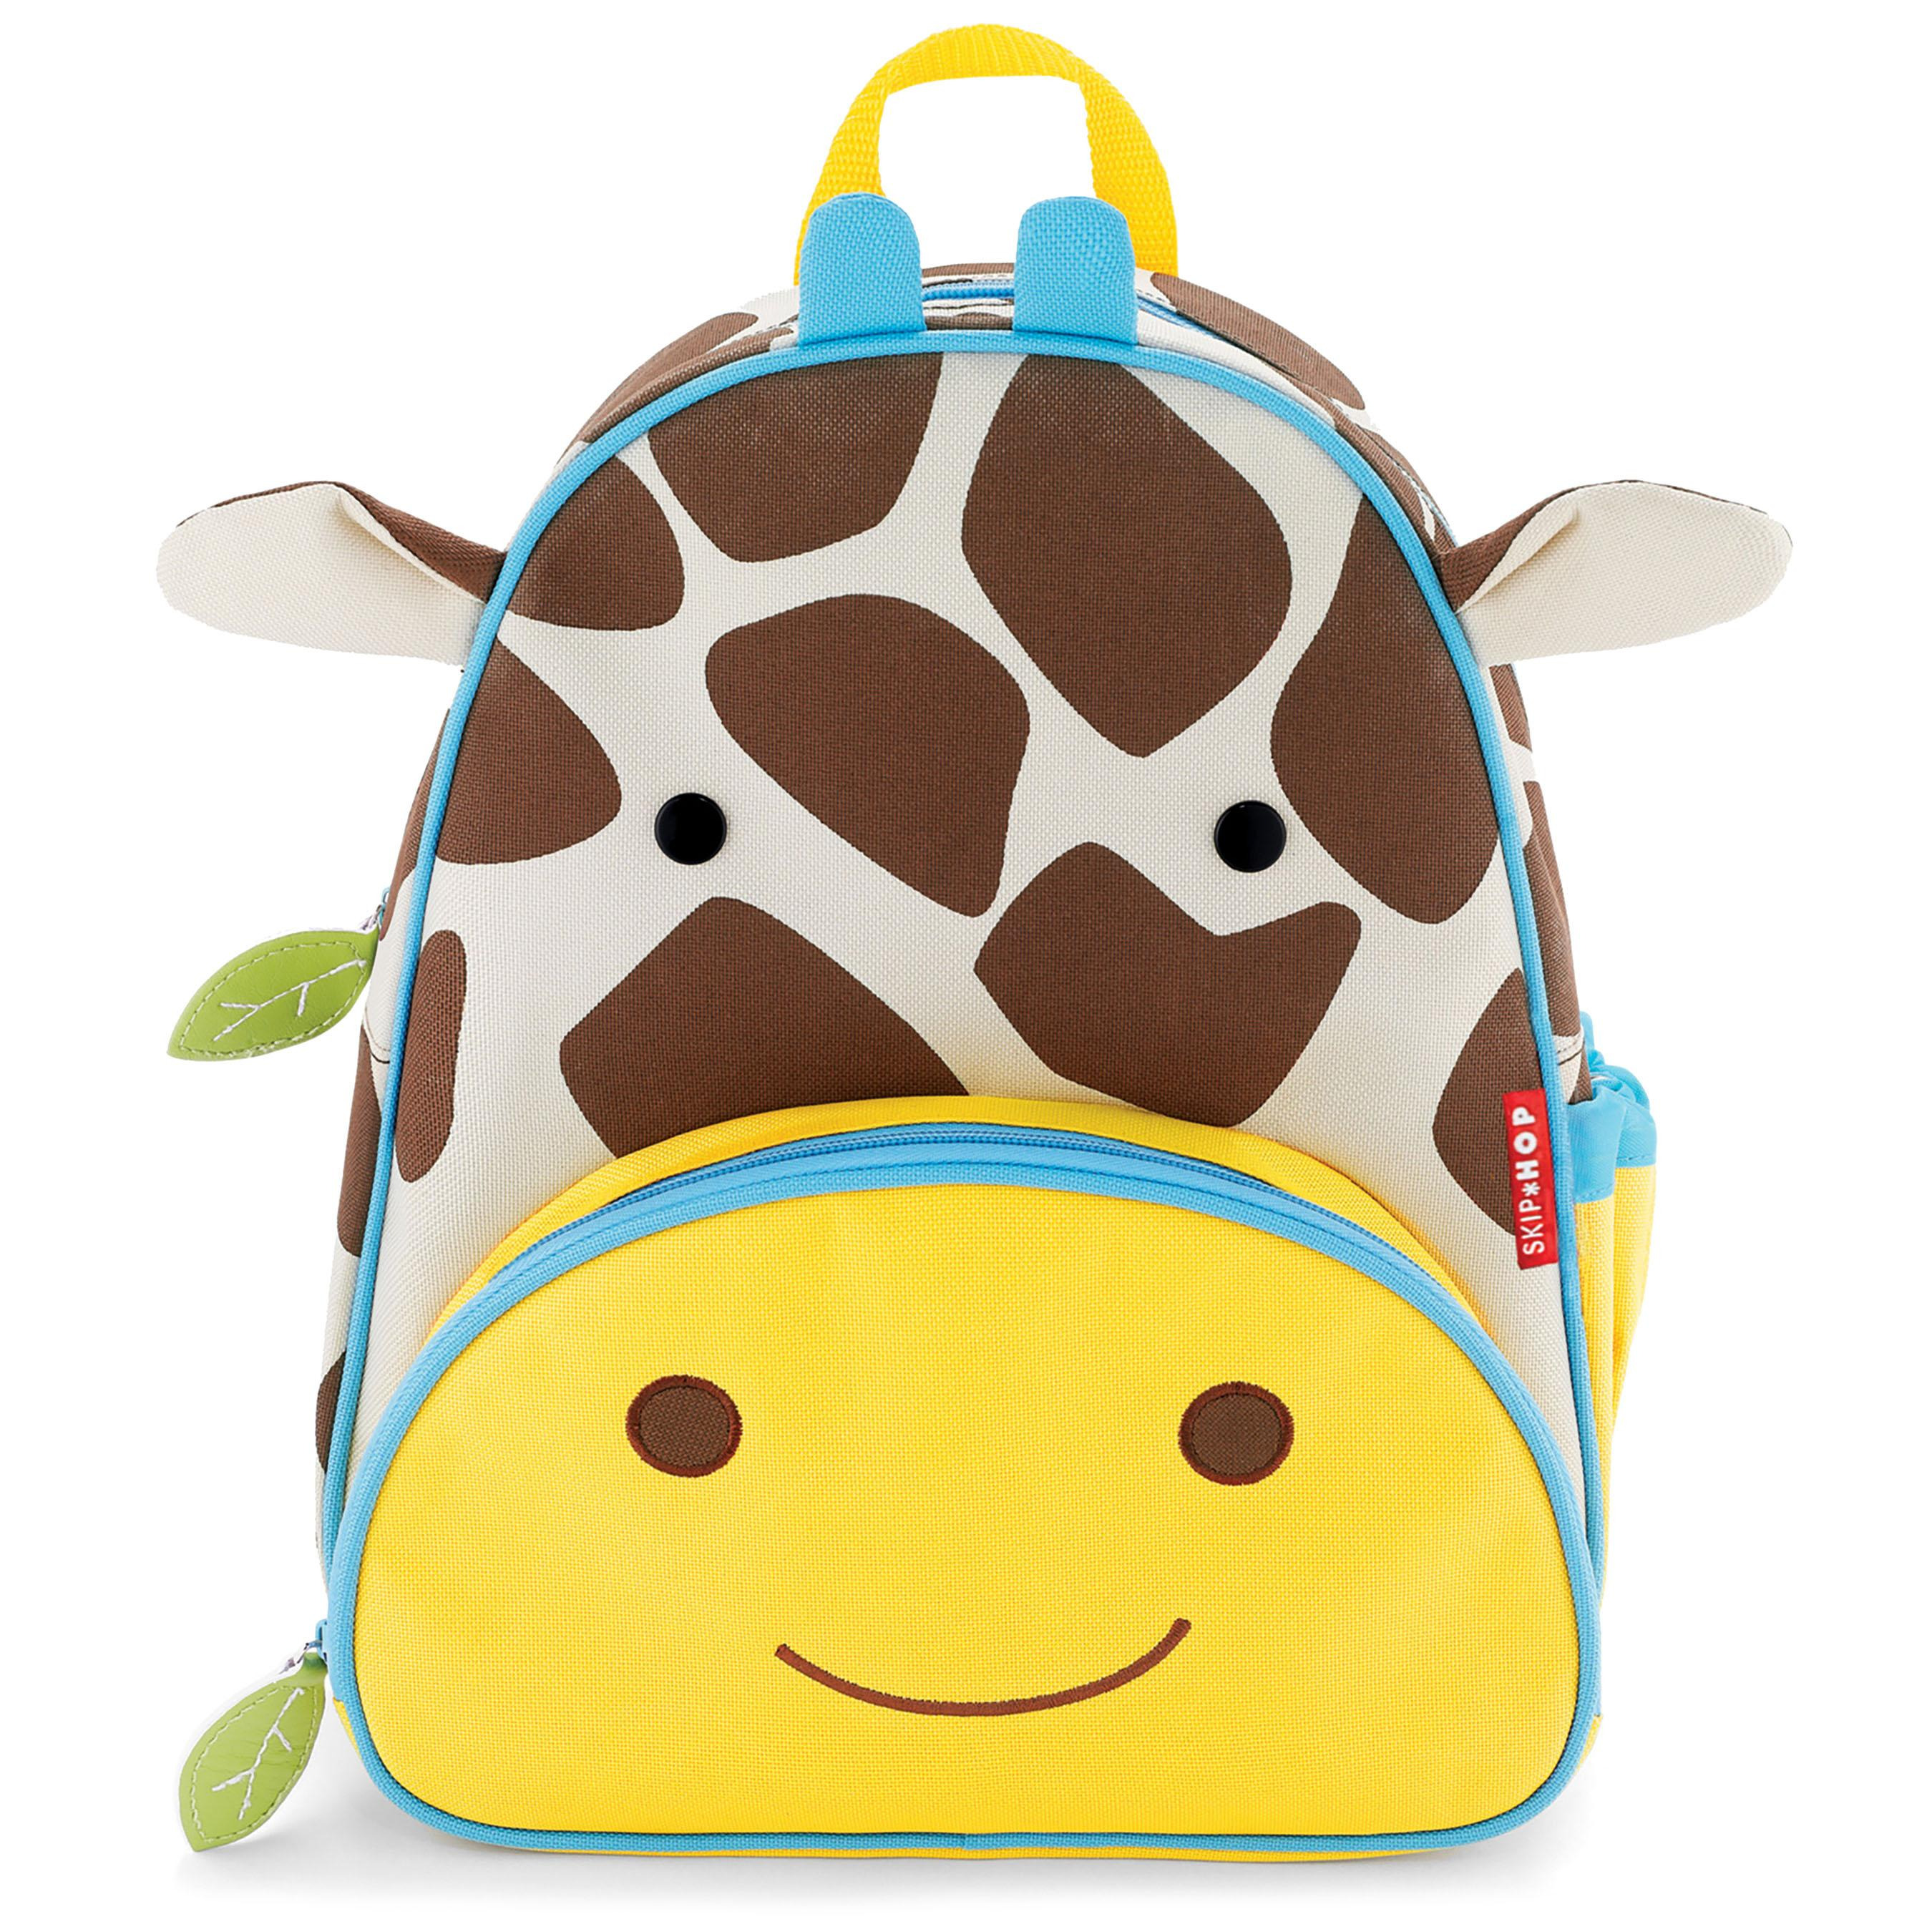 Skip Hop Zoopack - Giraffe By Mothercare Philippines.